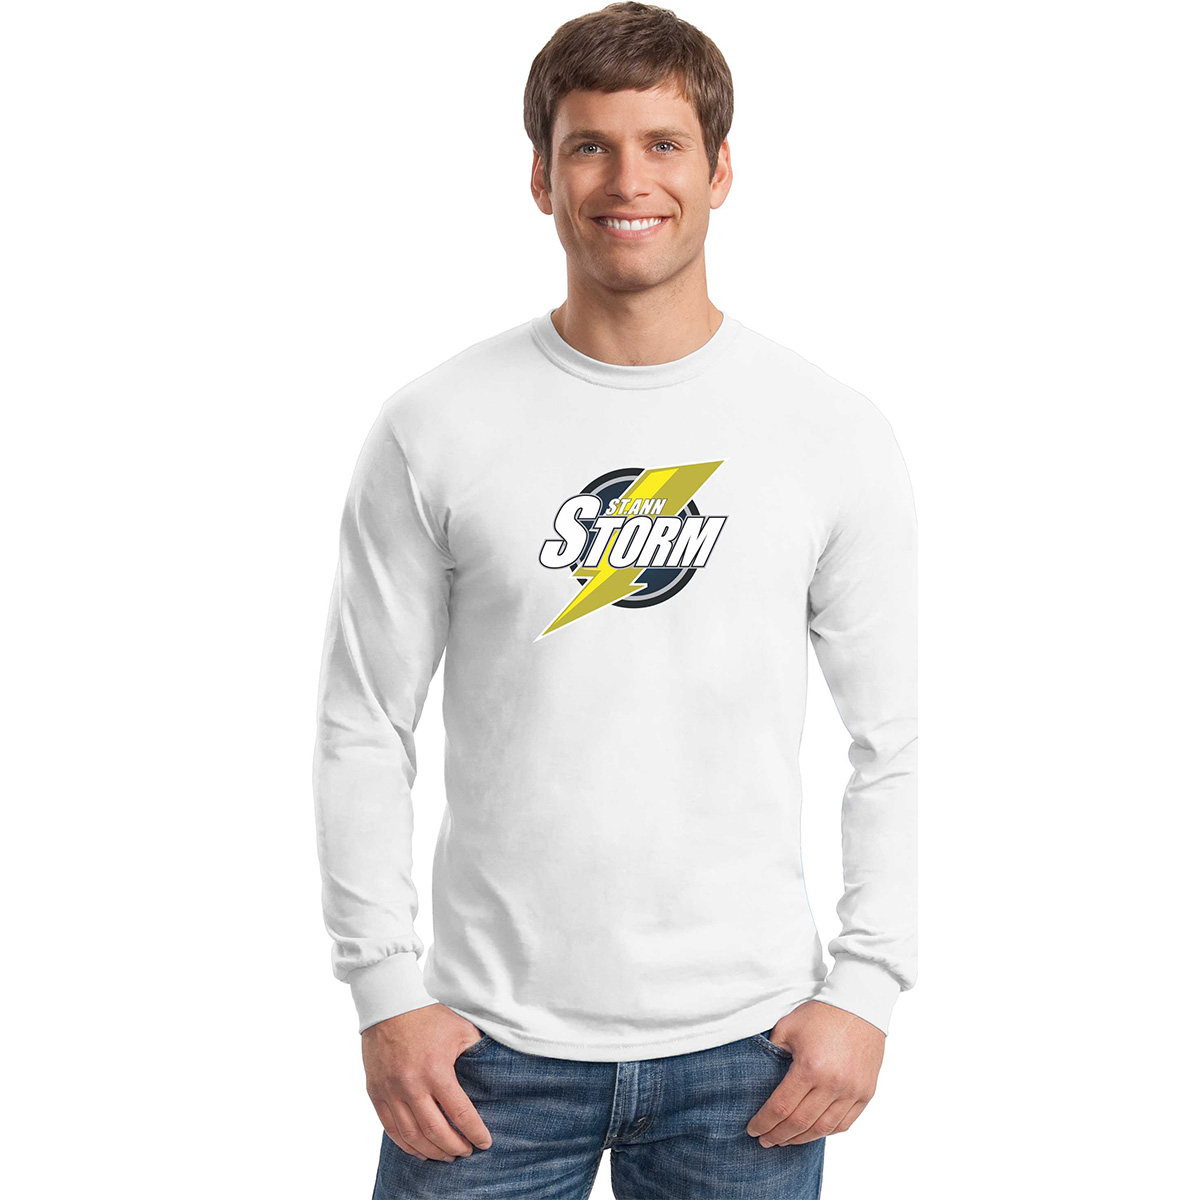 St. Ann Storm 2017 Staff Spiritwear Adult Long Sleeve T ...